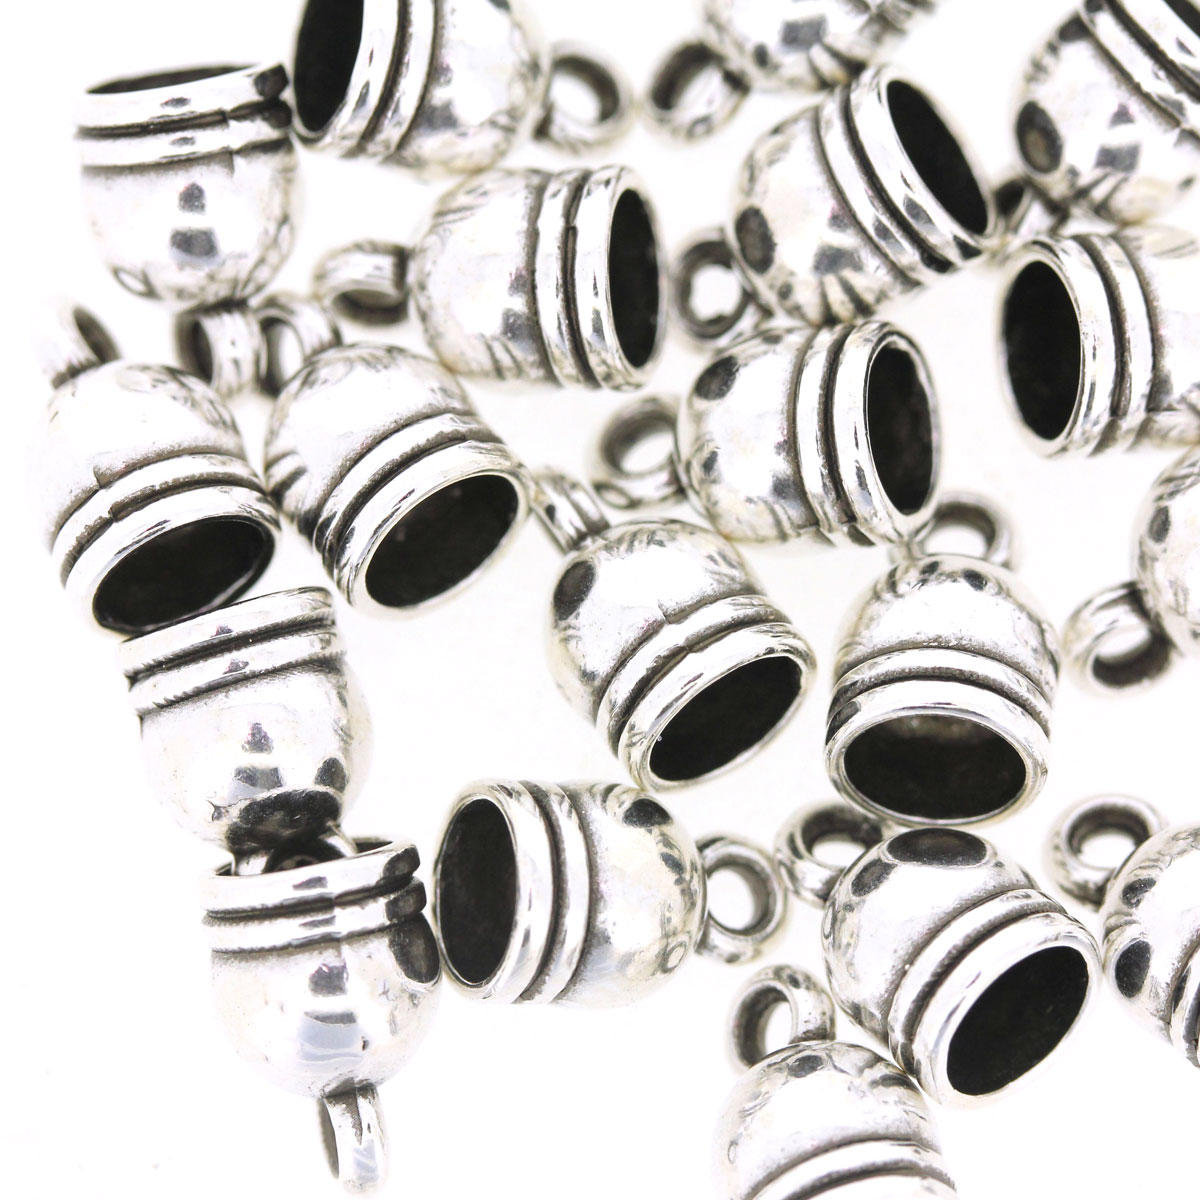 Antique Silver Ringed Bead Cap